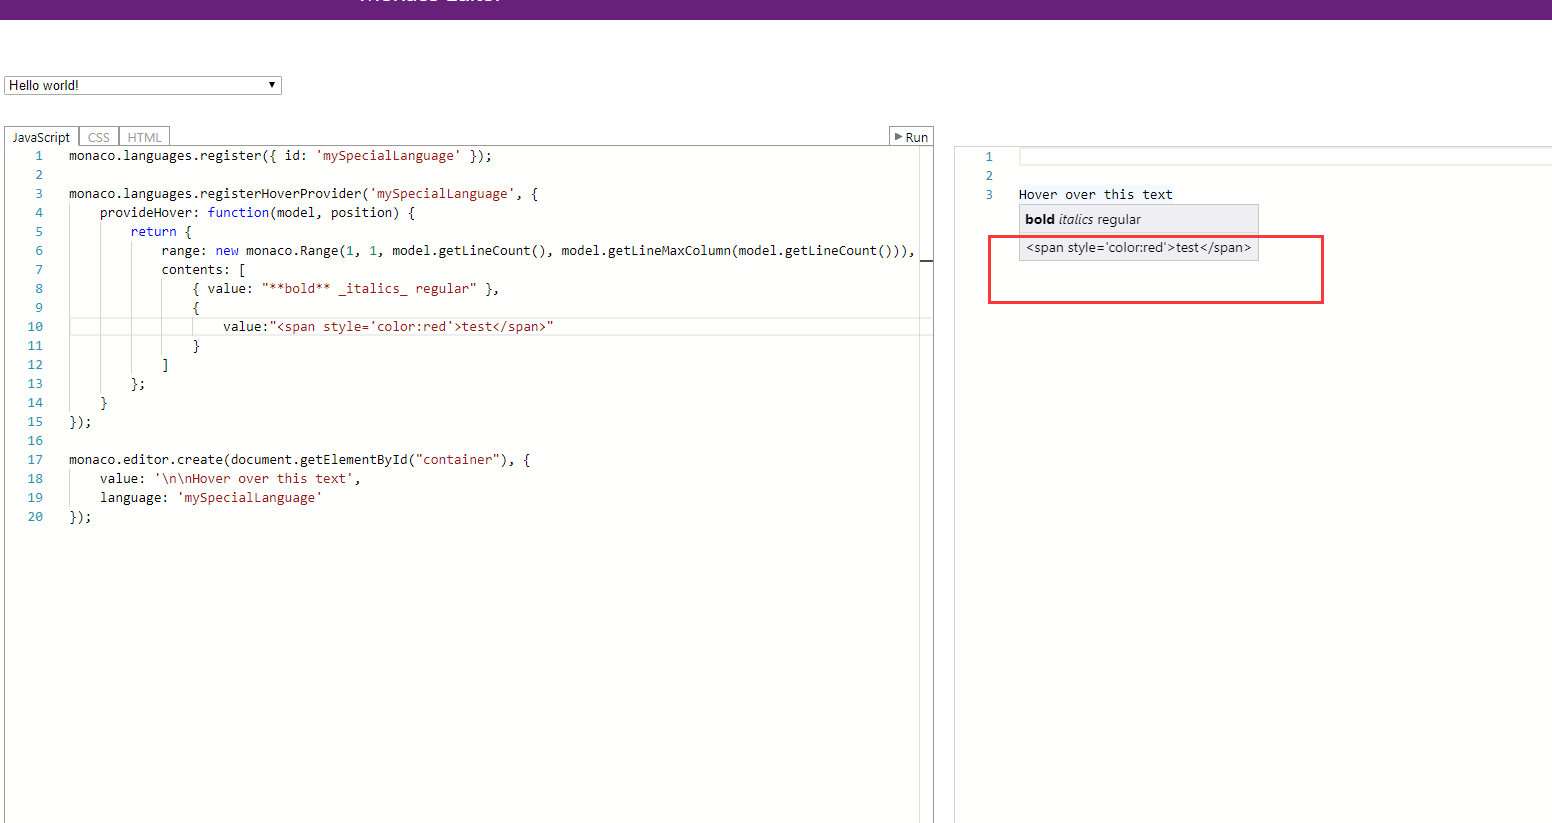 HTML support in hover (inline HTML in IMarkdownString